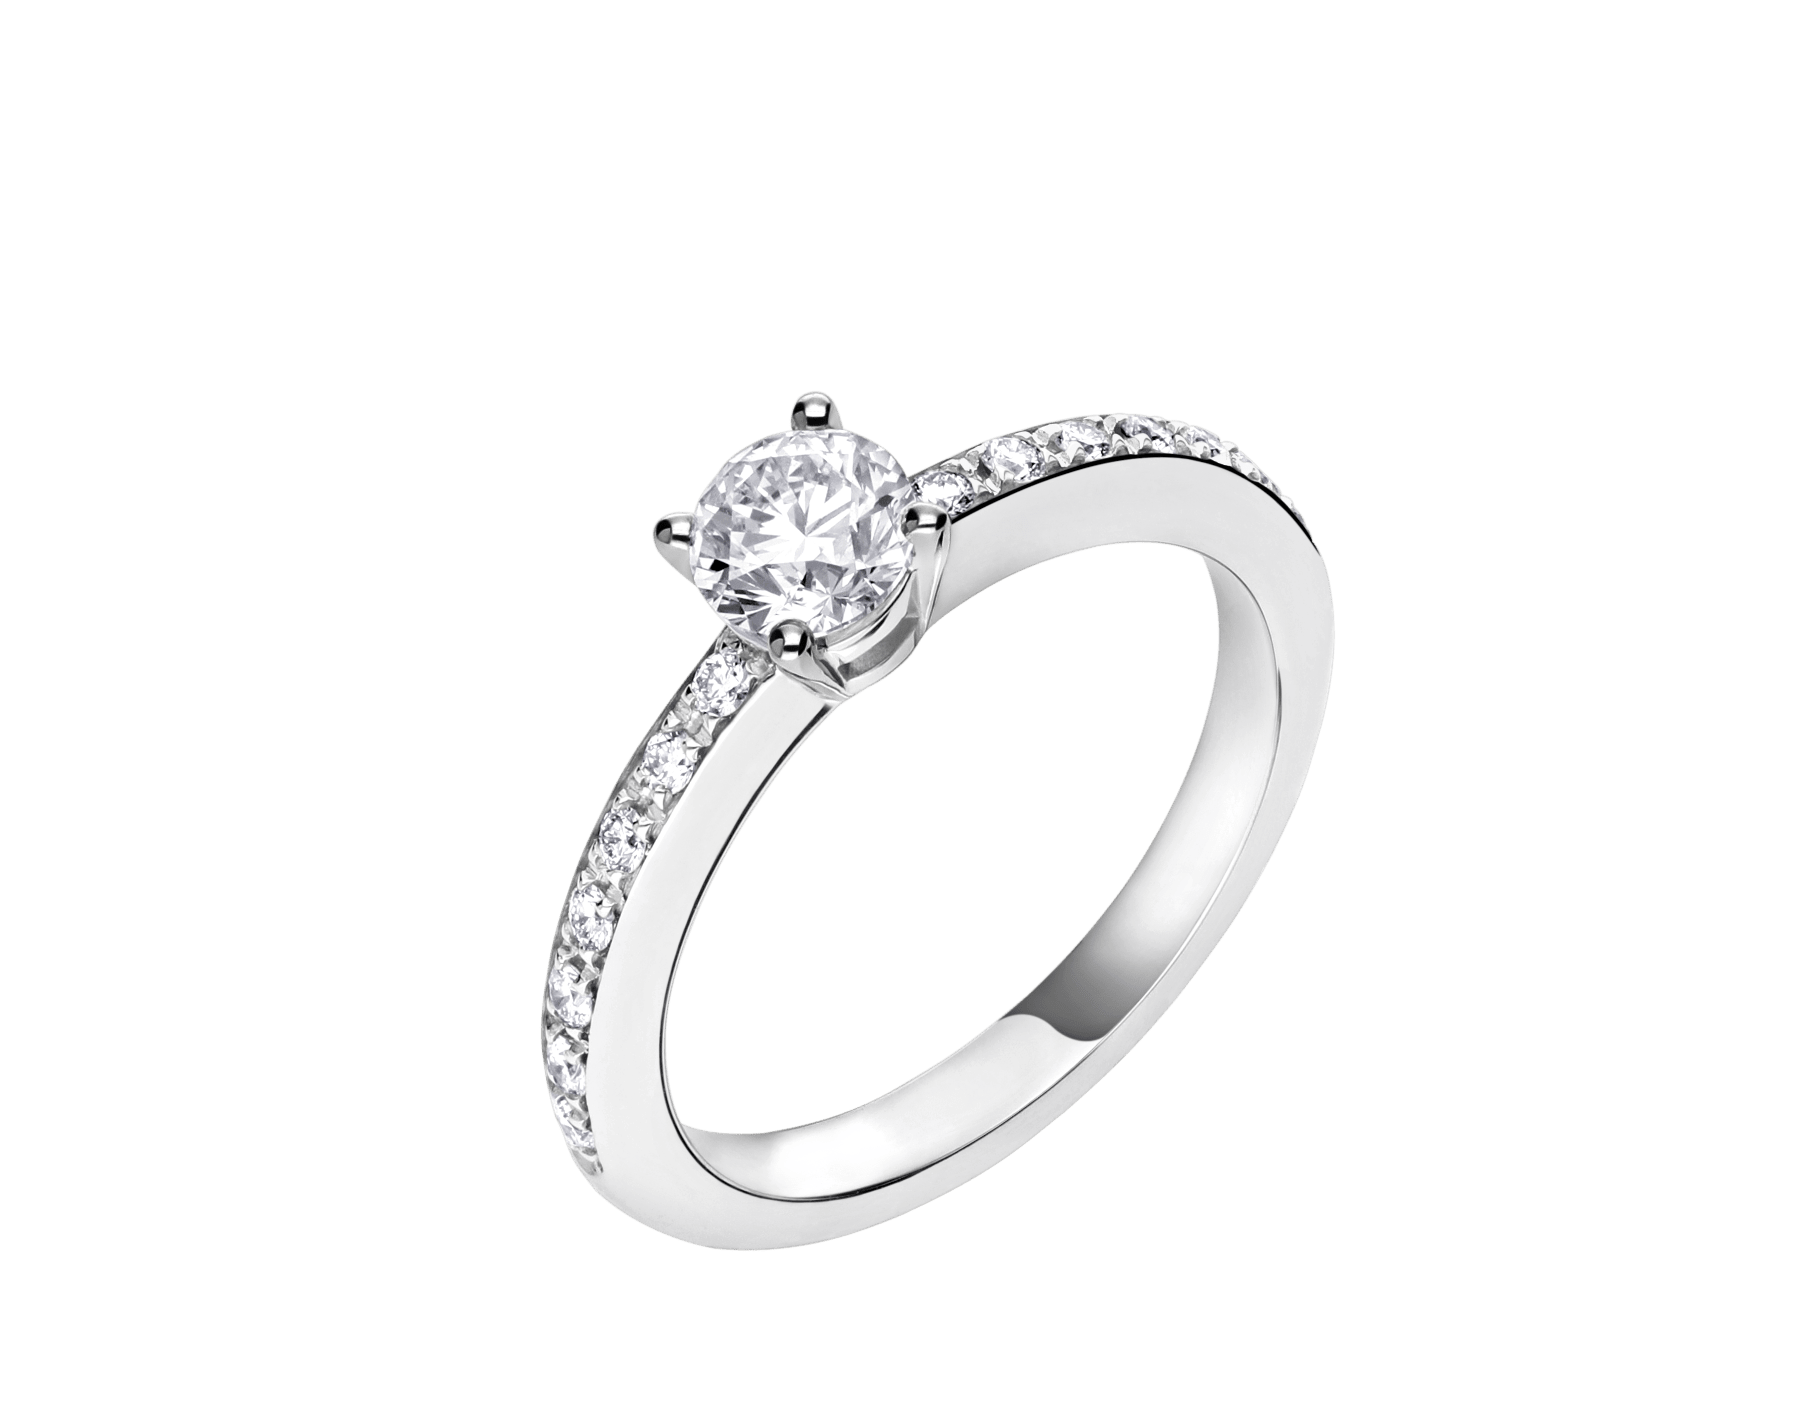 Griffe solitaire ring in platinum with a round brilliant cut diamond and pavé diamonds 340252 image 2